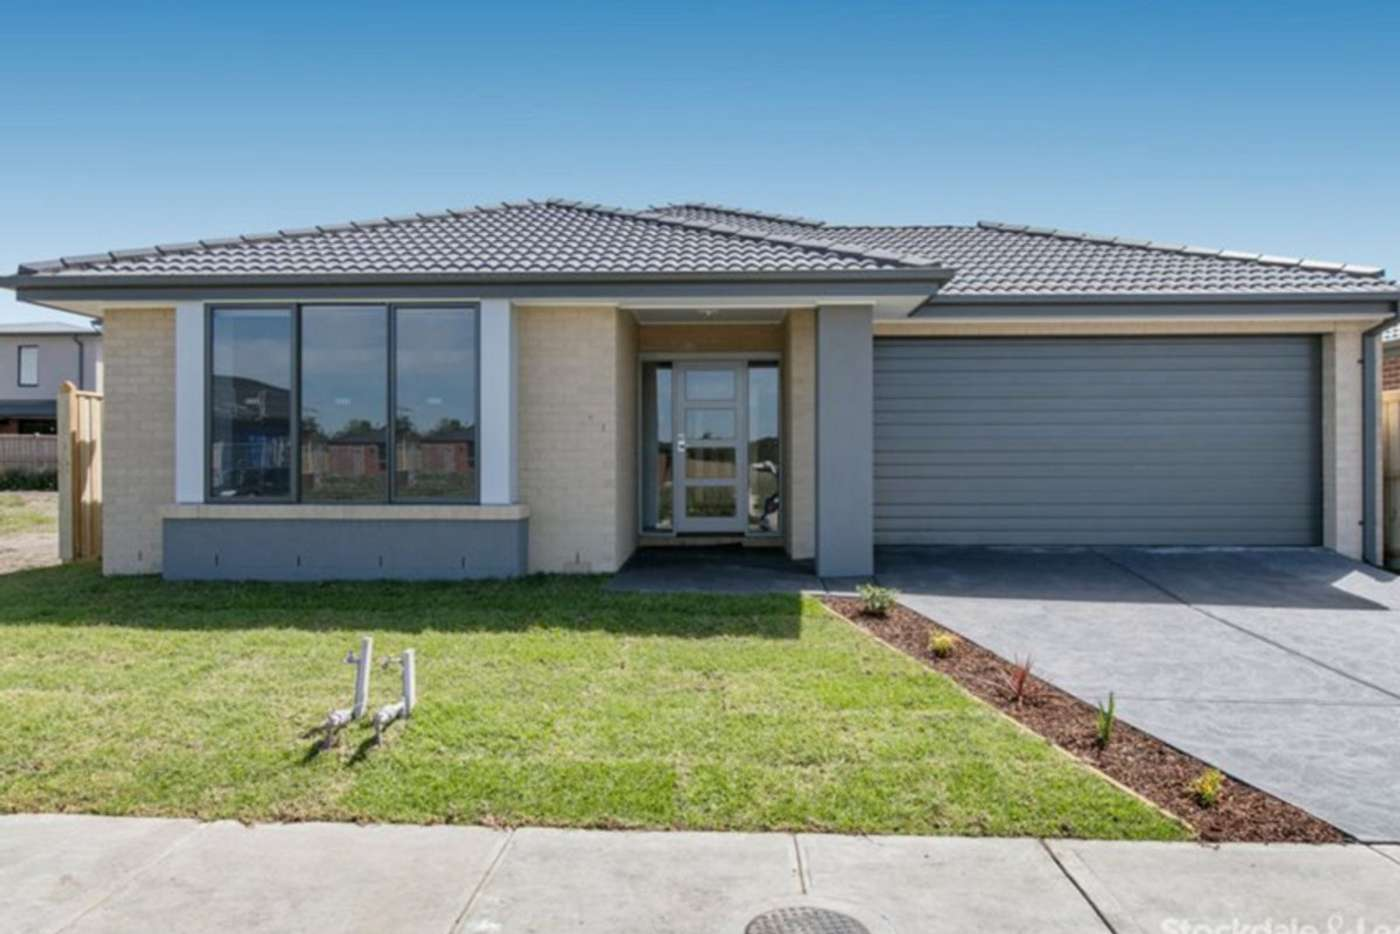 Main view of Homely house listing, 12 Gemma Street, Cranbourne East VIC 3977